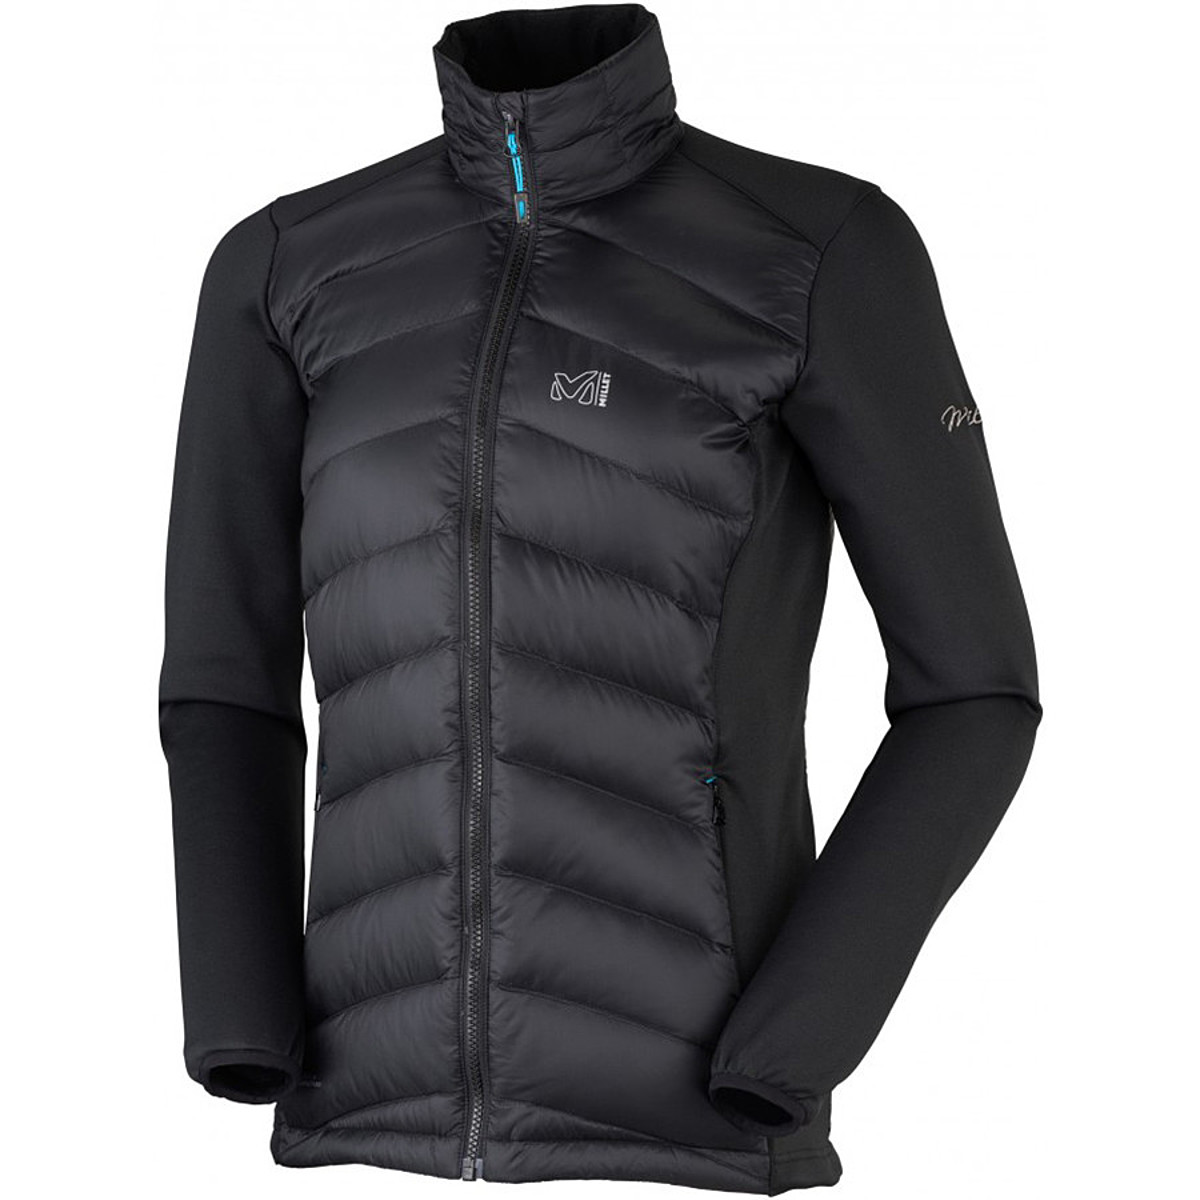 Millet Hybrid Heel Lift Down Jacket